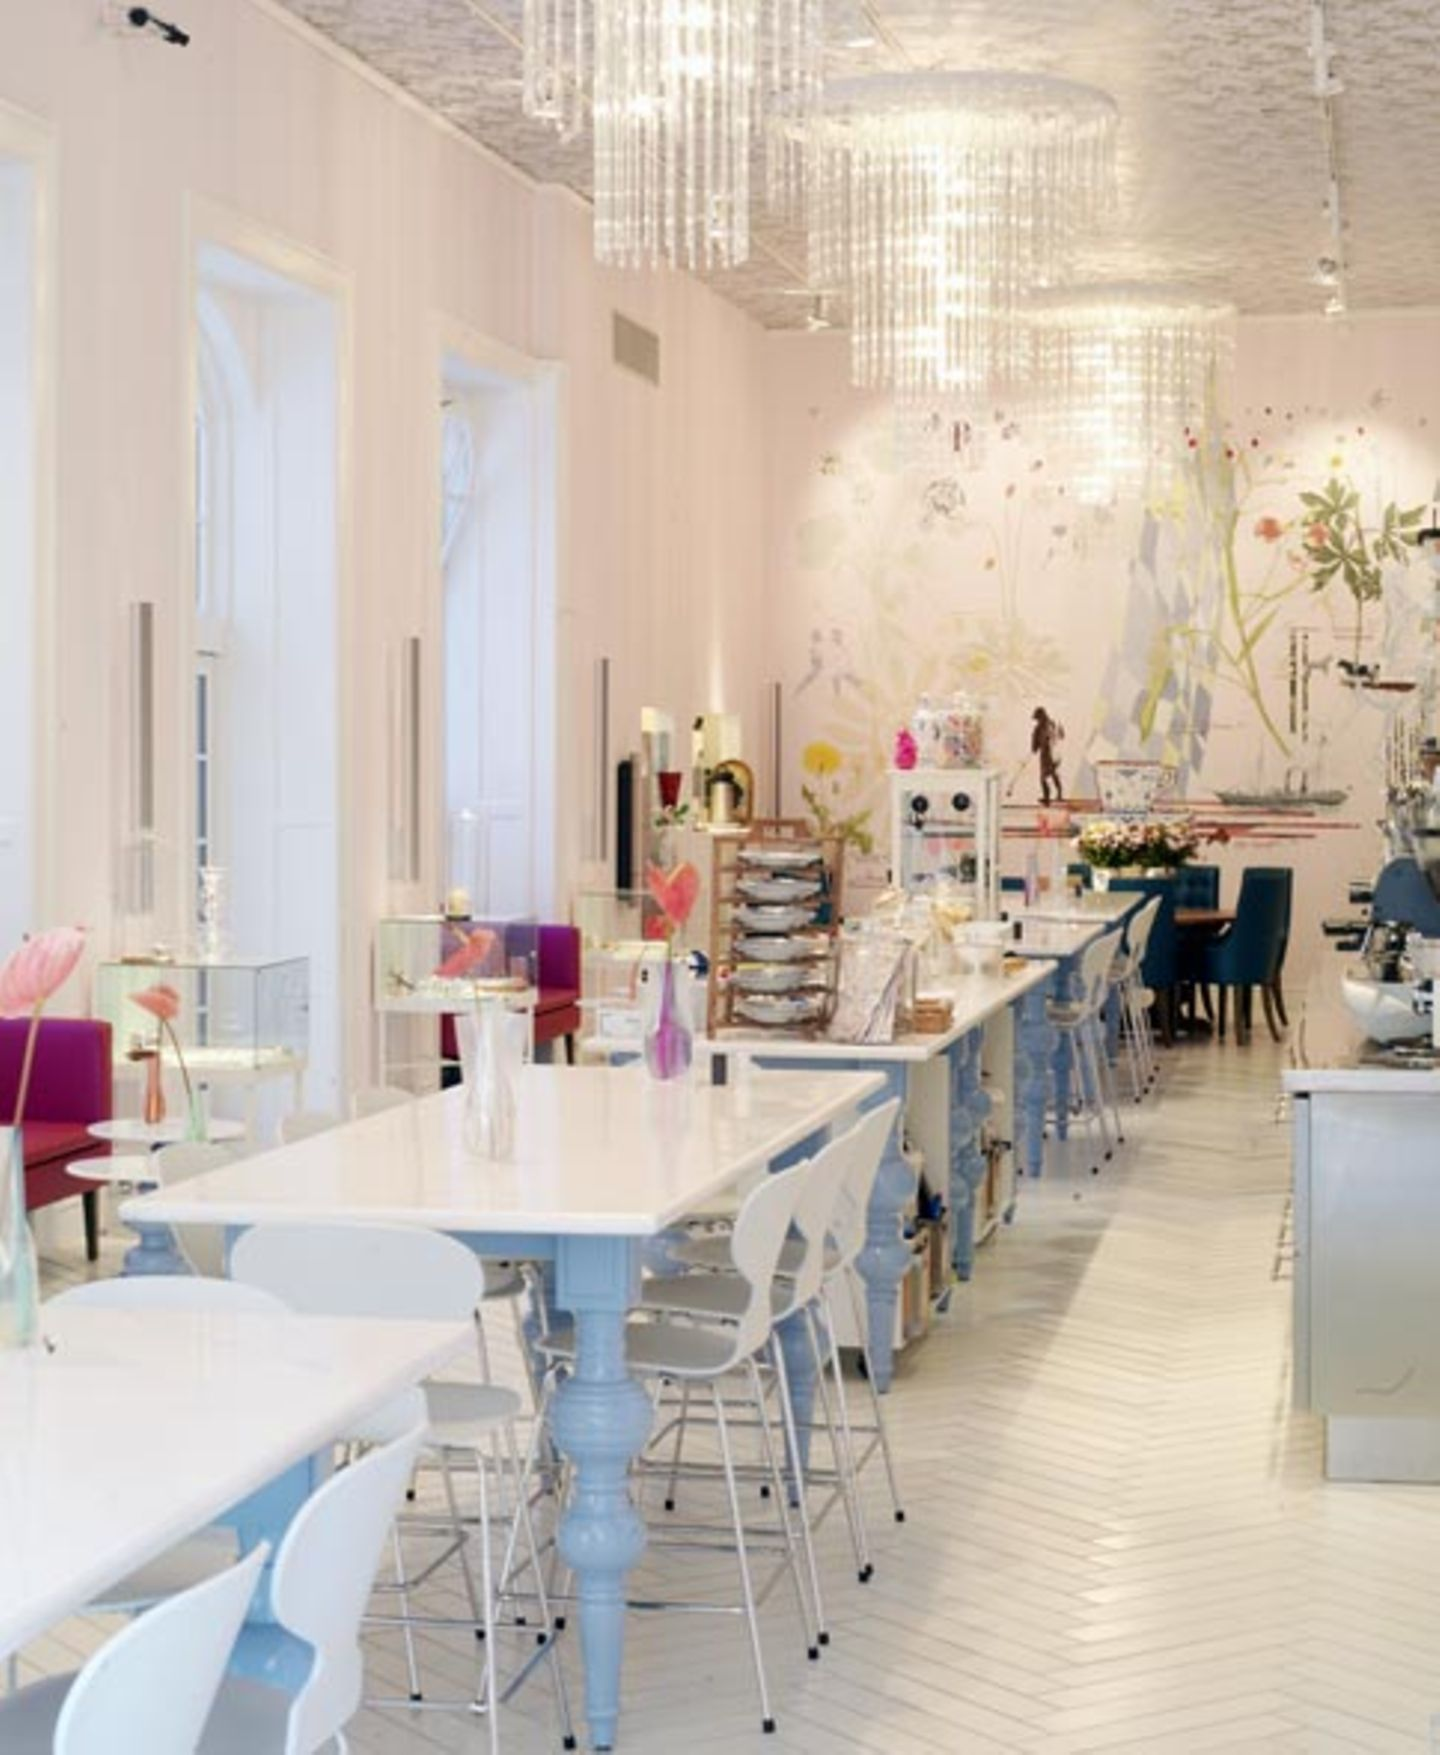 Essen & shoppen: The Royal Cafe